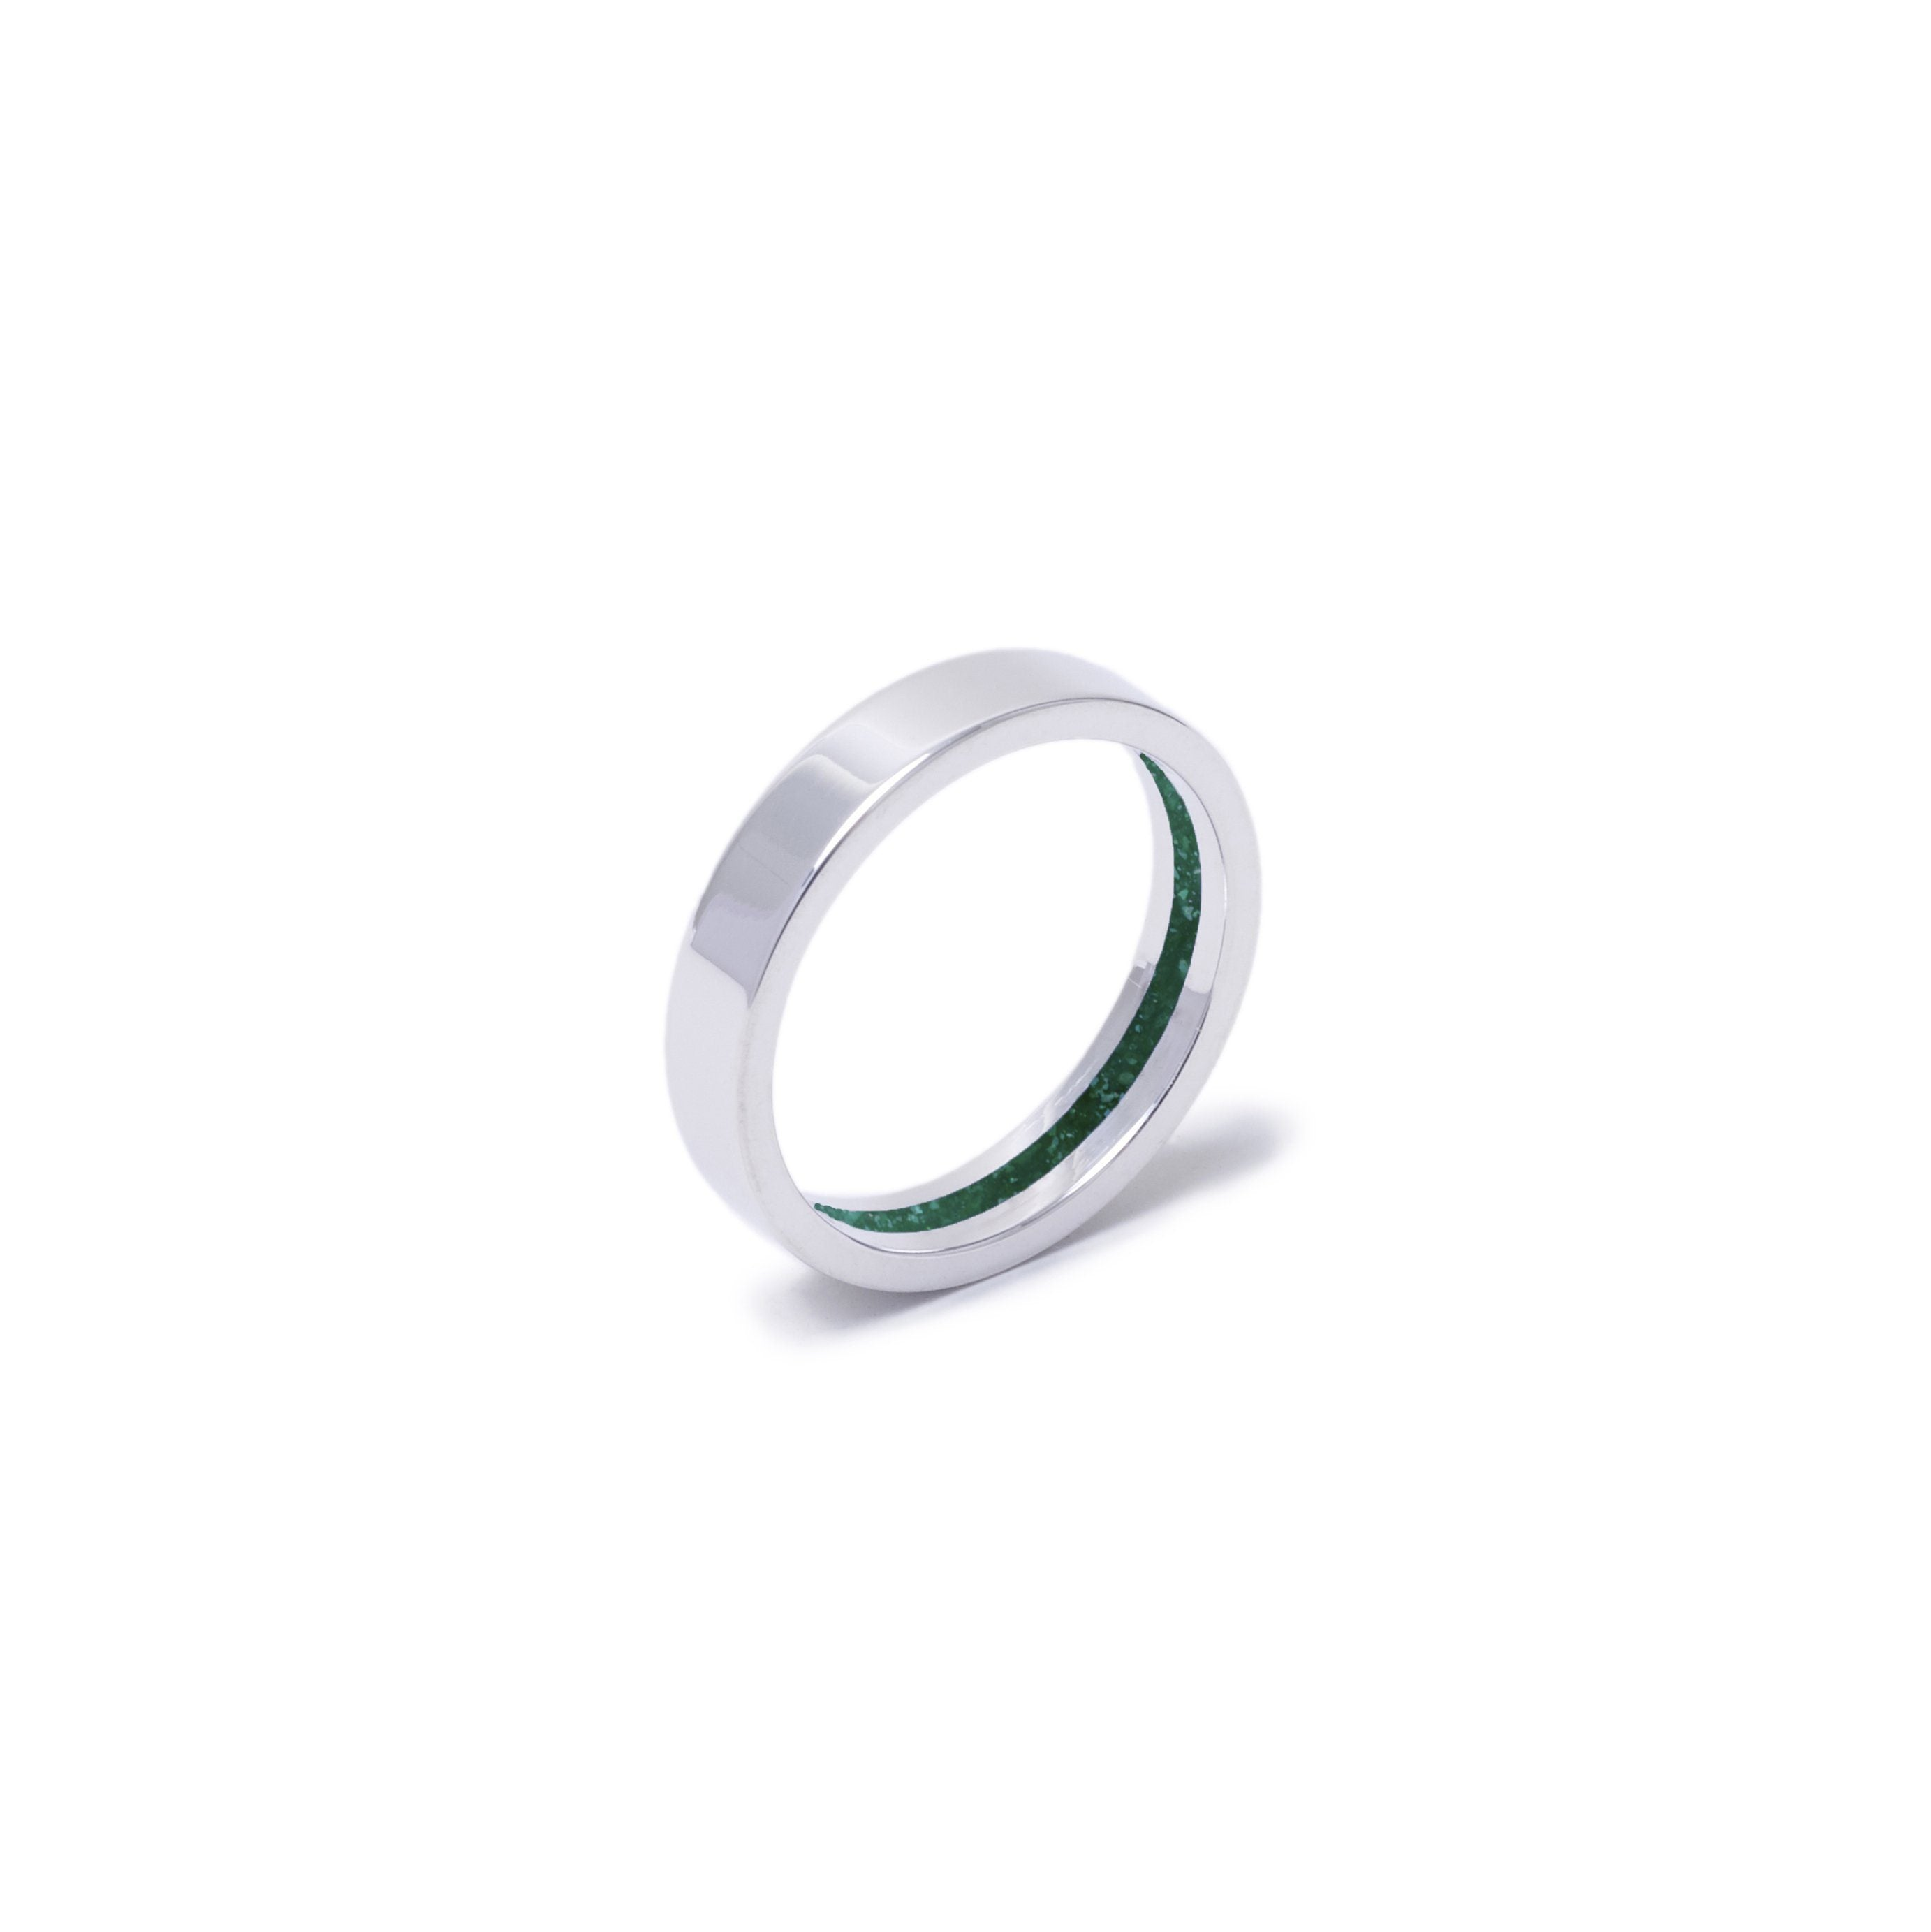 Everence Ring, 10k White Gold everence.life 4mm Emerald